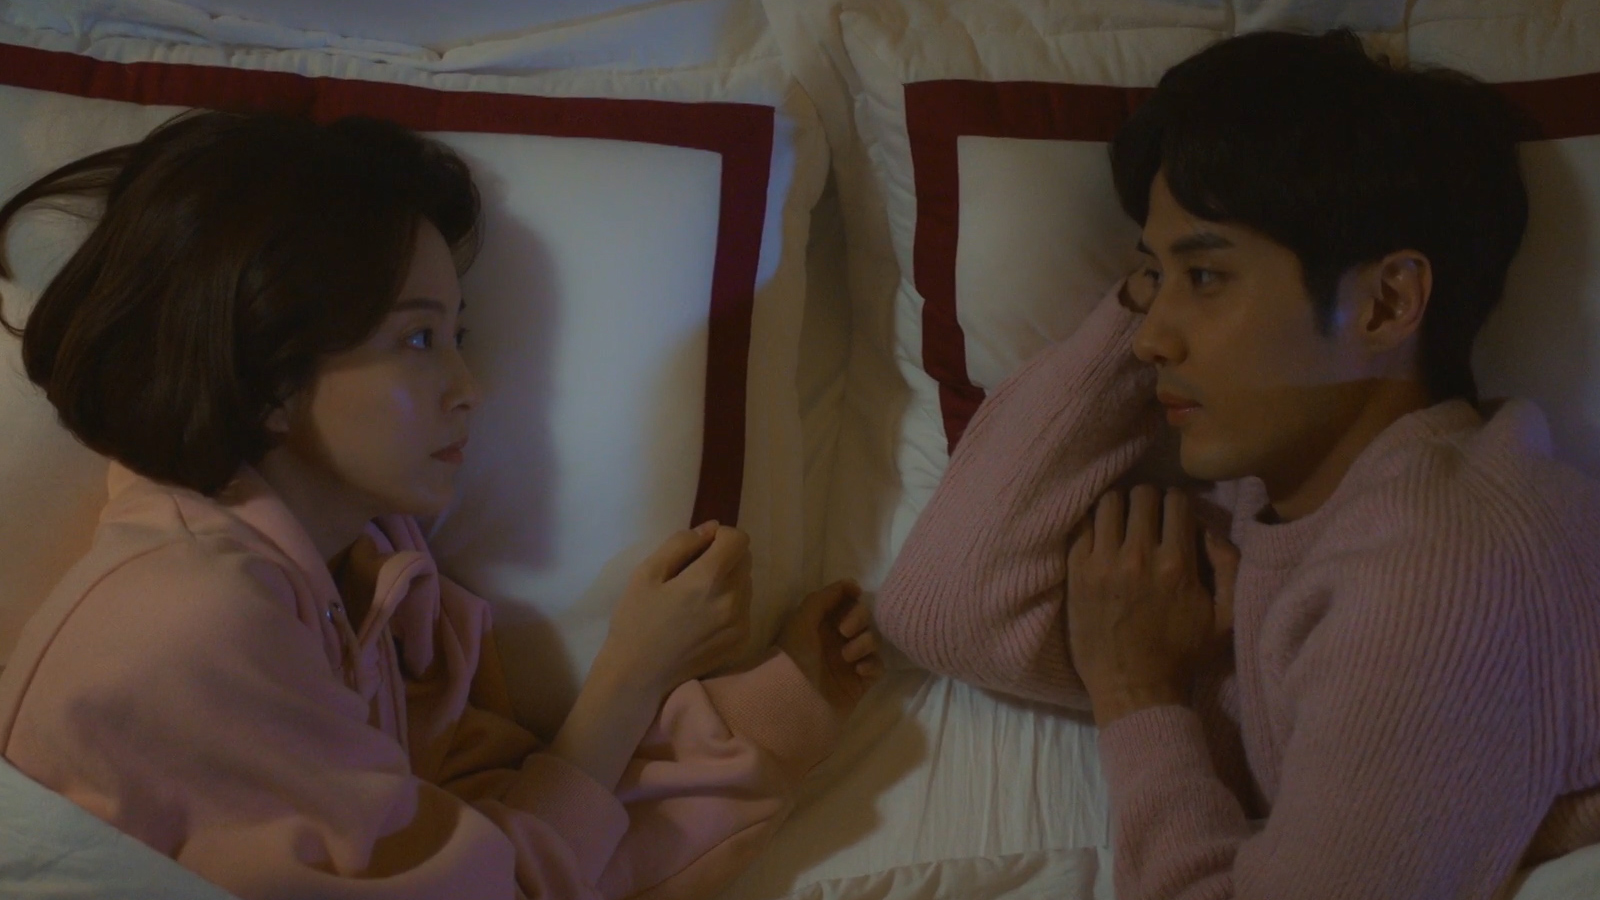 20th Century Boy and Girl Episode 17